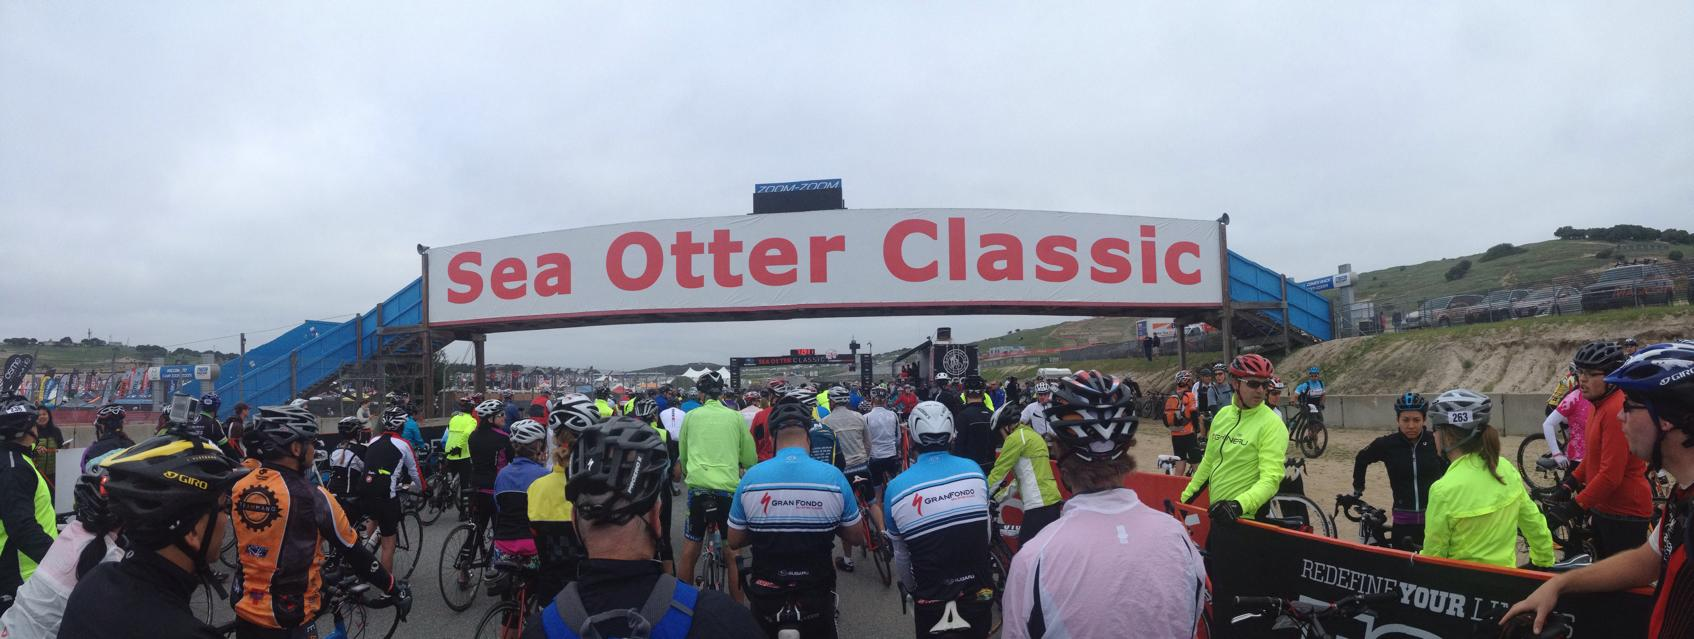 Sea Otter Classic: A Spring Festival Of Bicycles, Racing And Fun